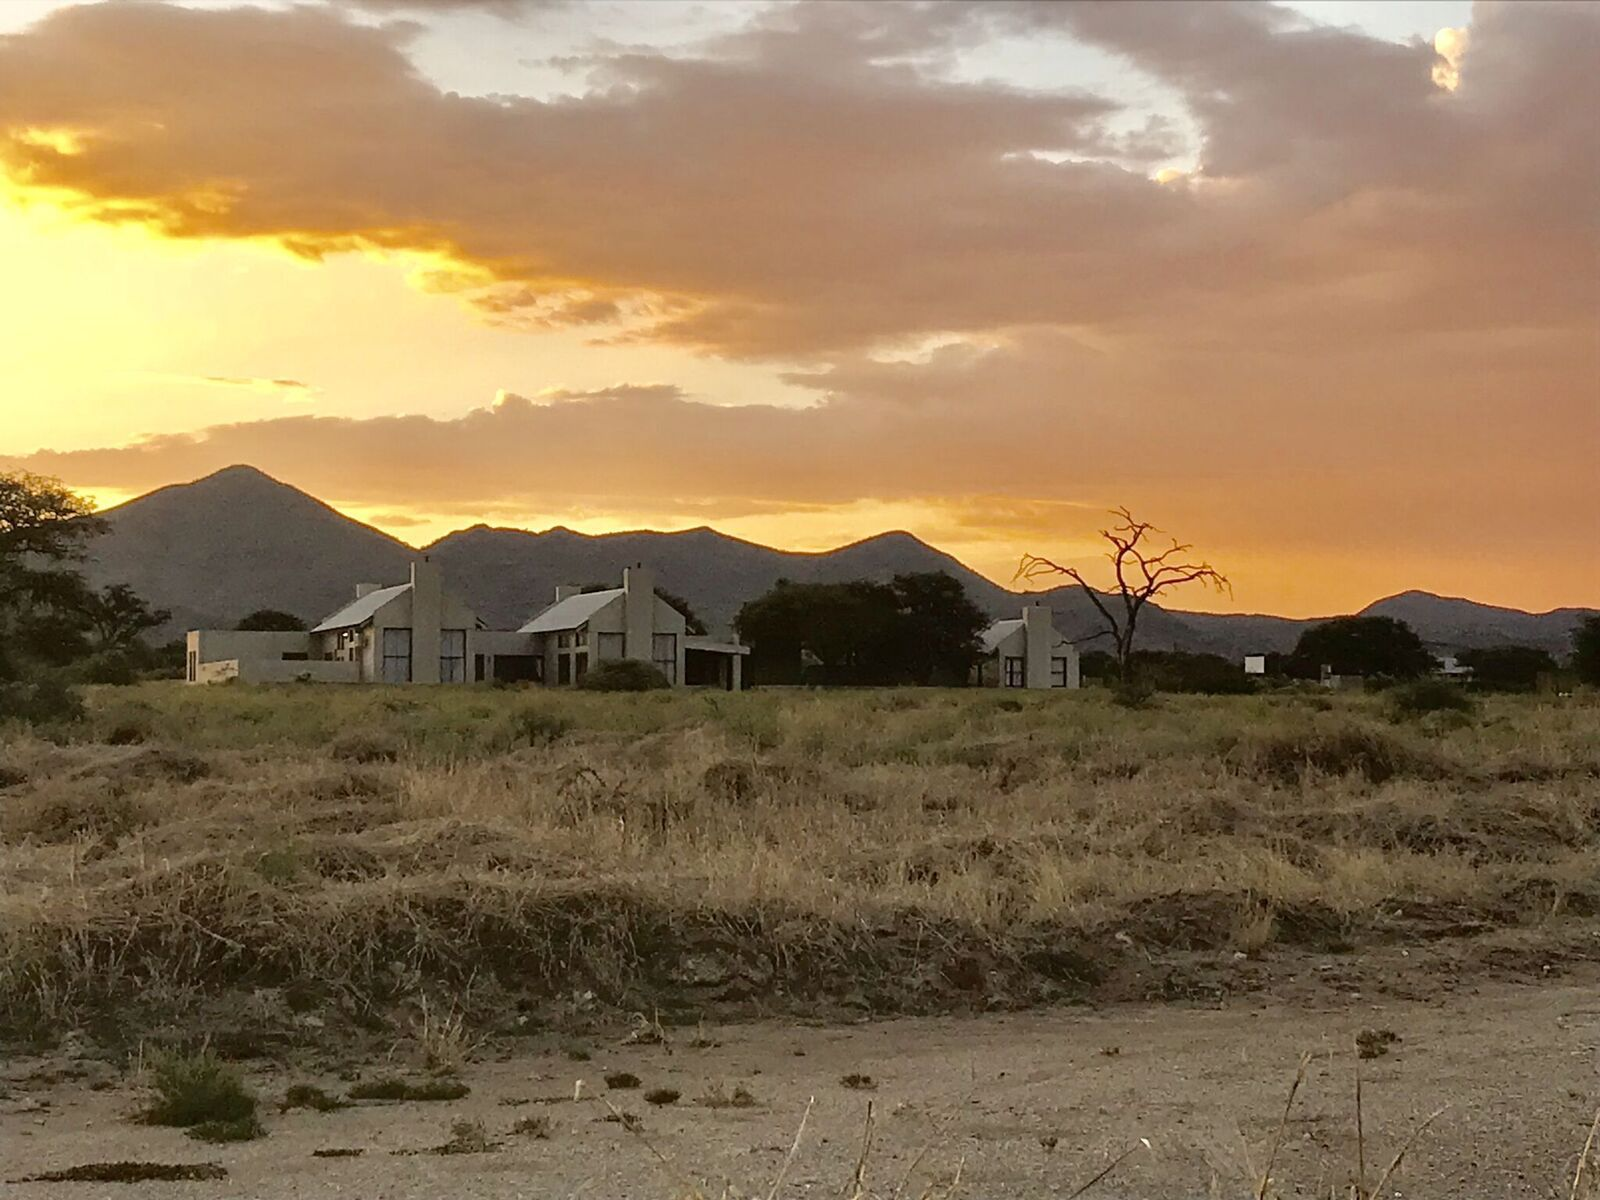 House in Namibia - 9XPXkEzc.jpeg